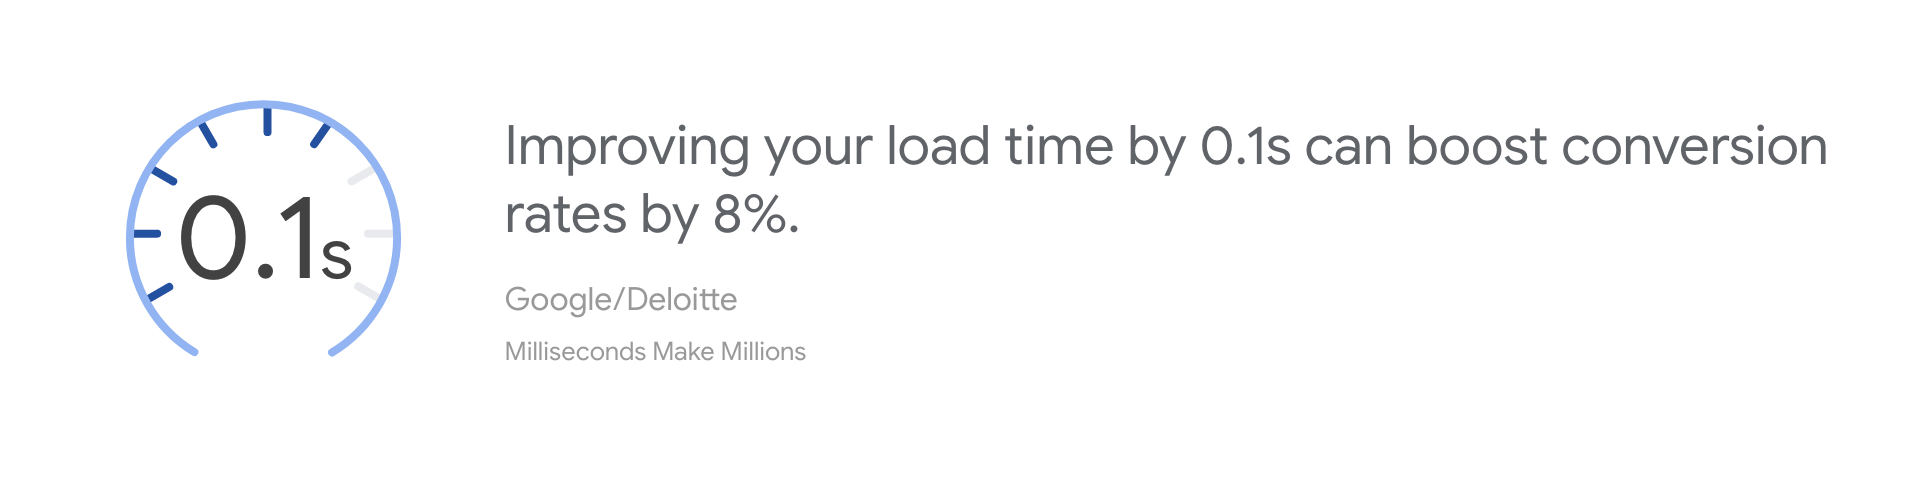 improving your load time by 0.1s can boost conversion rates by 8%